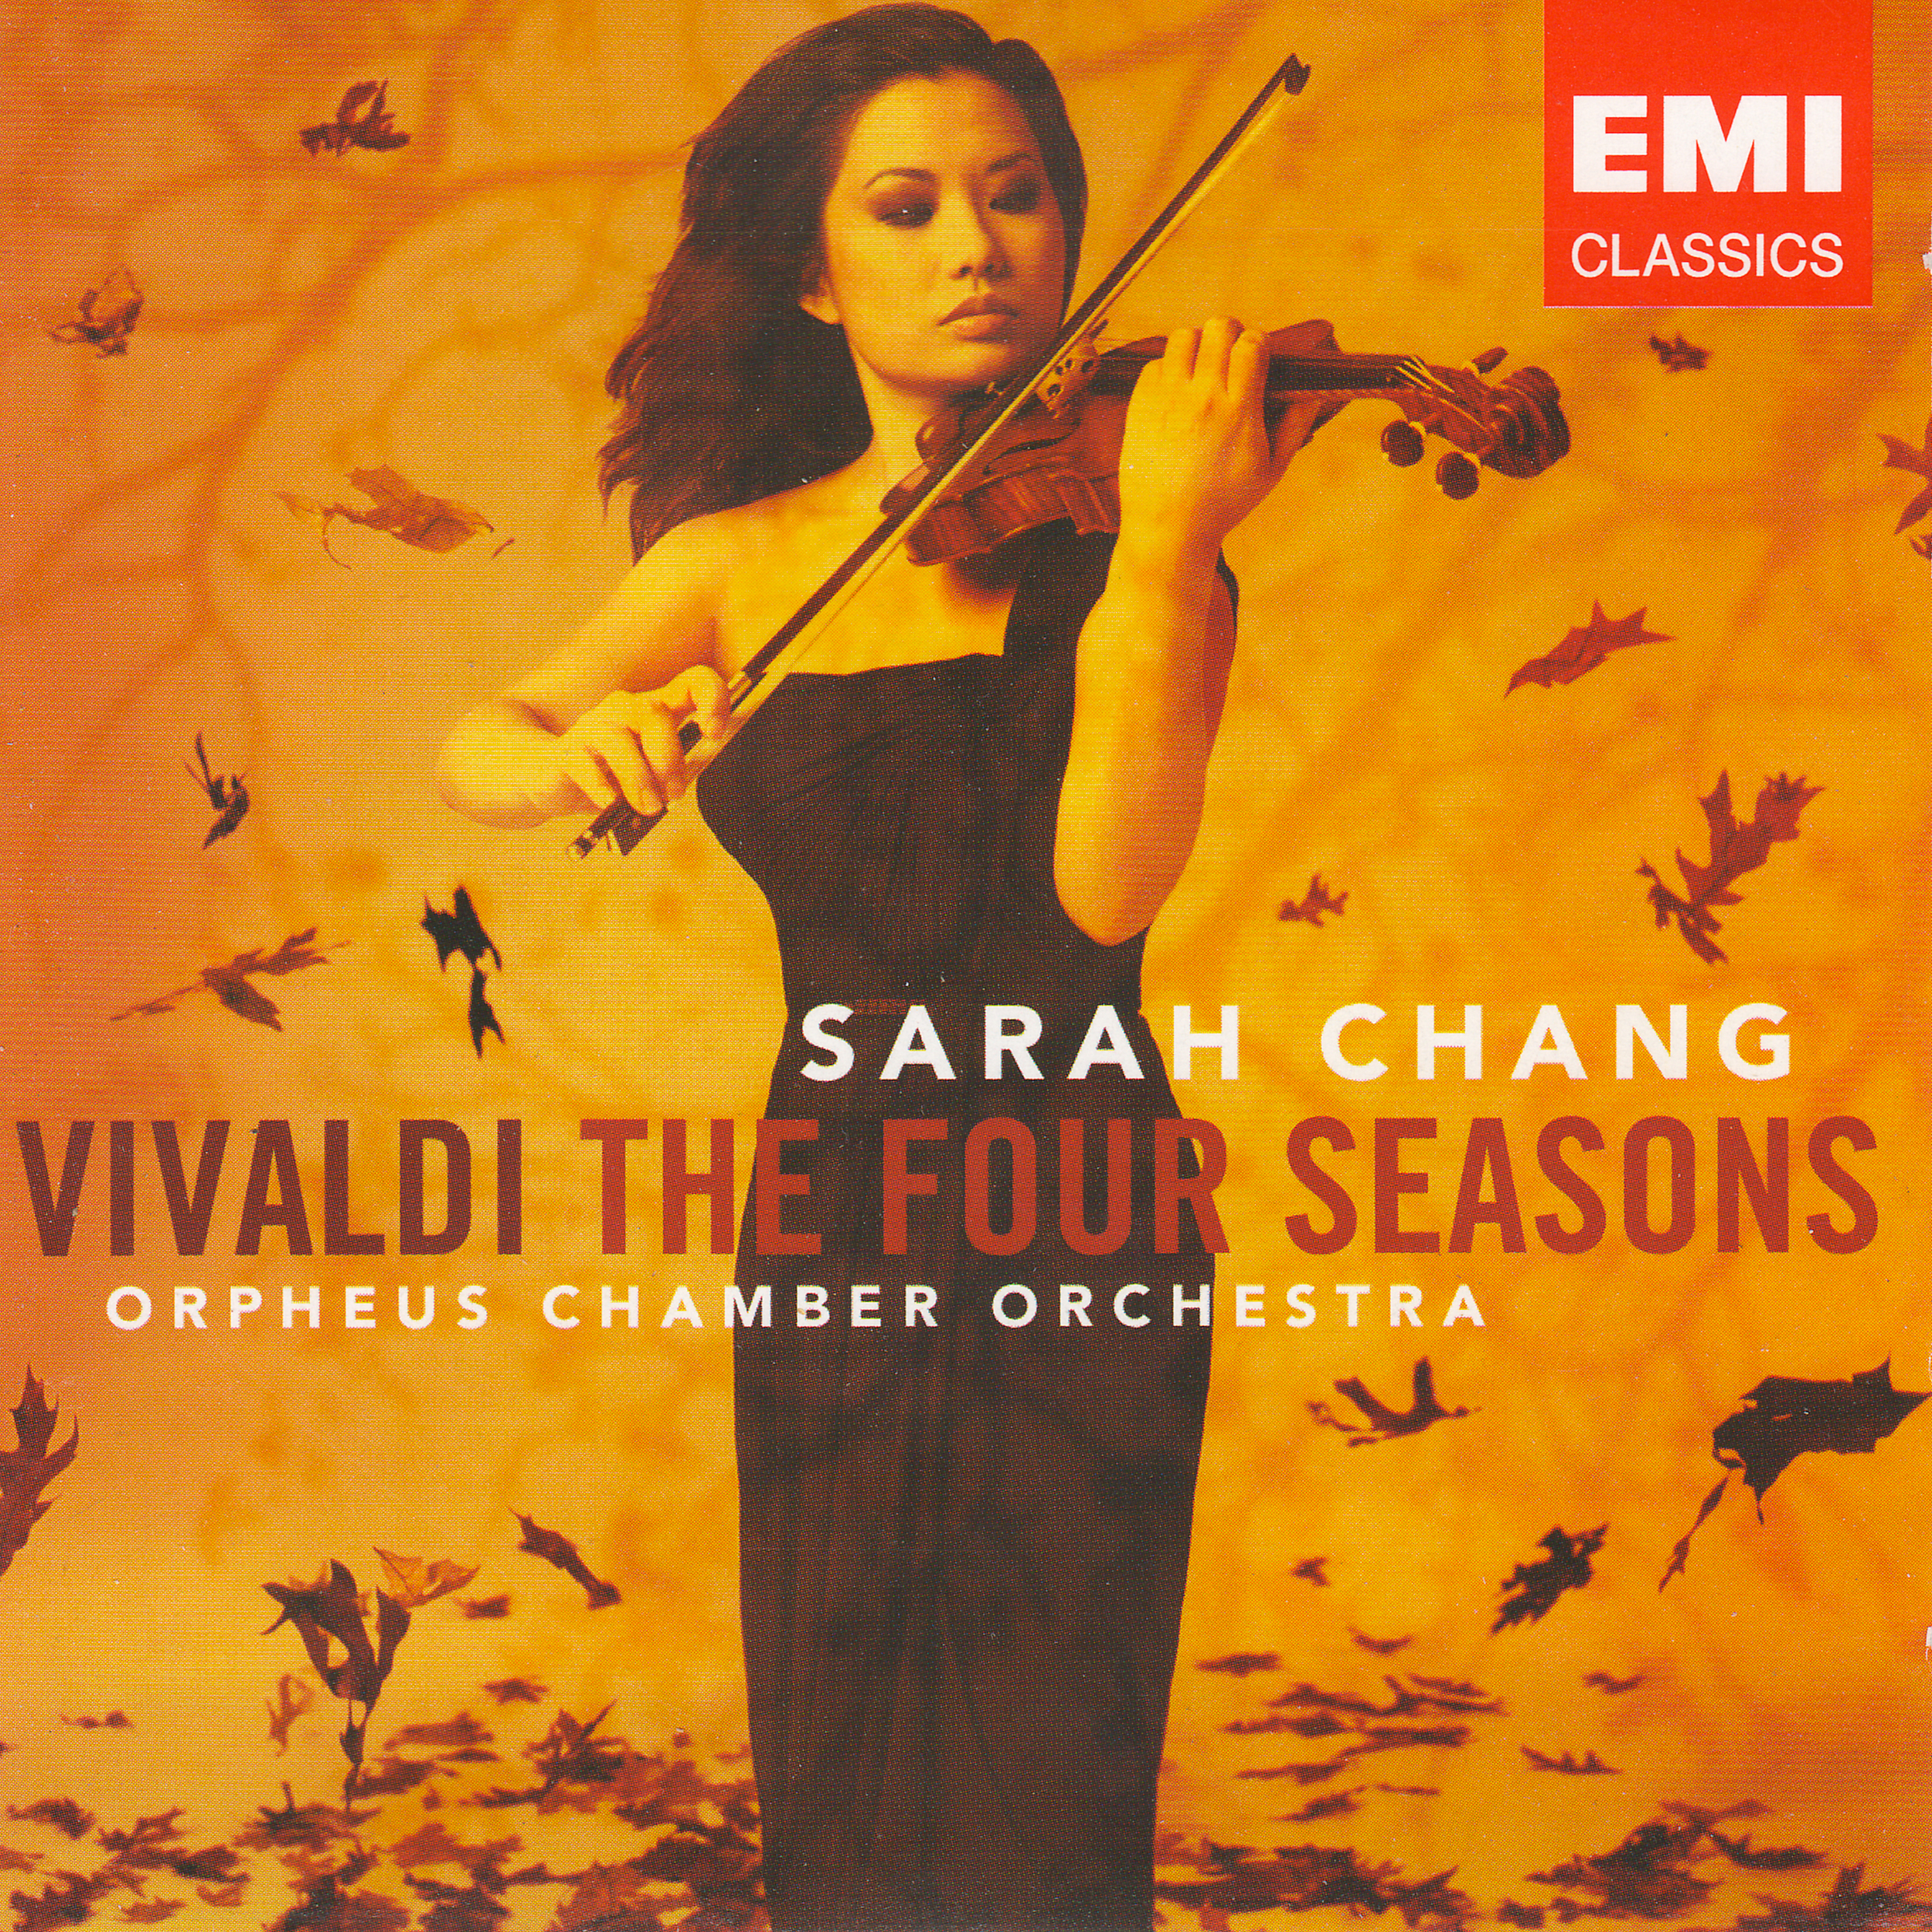 vivaldi 4 seasons sarah chang.jpg